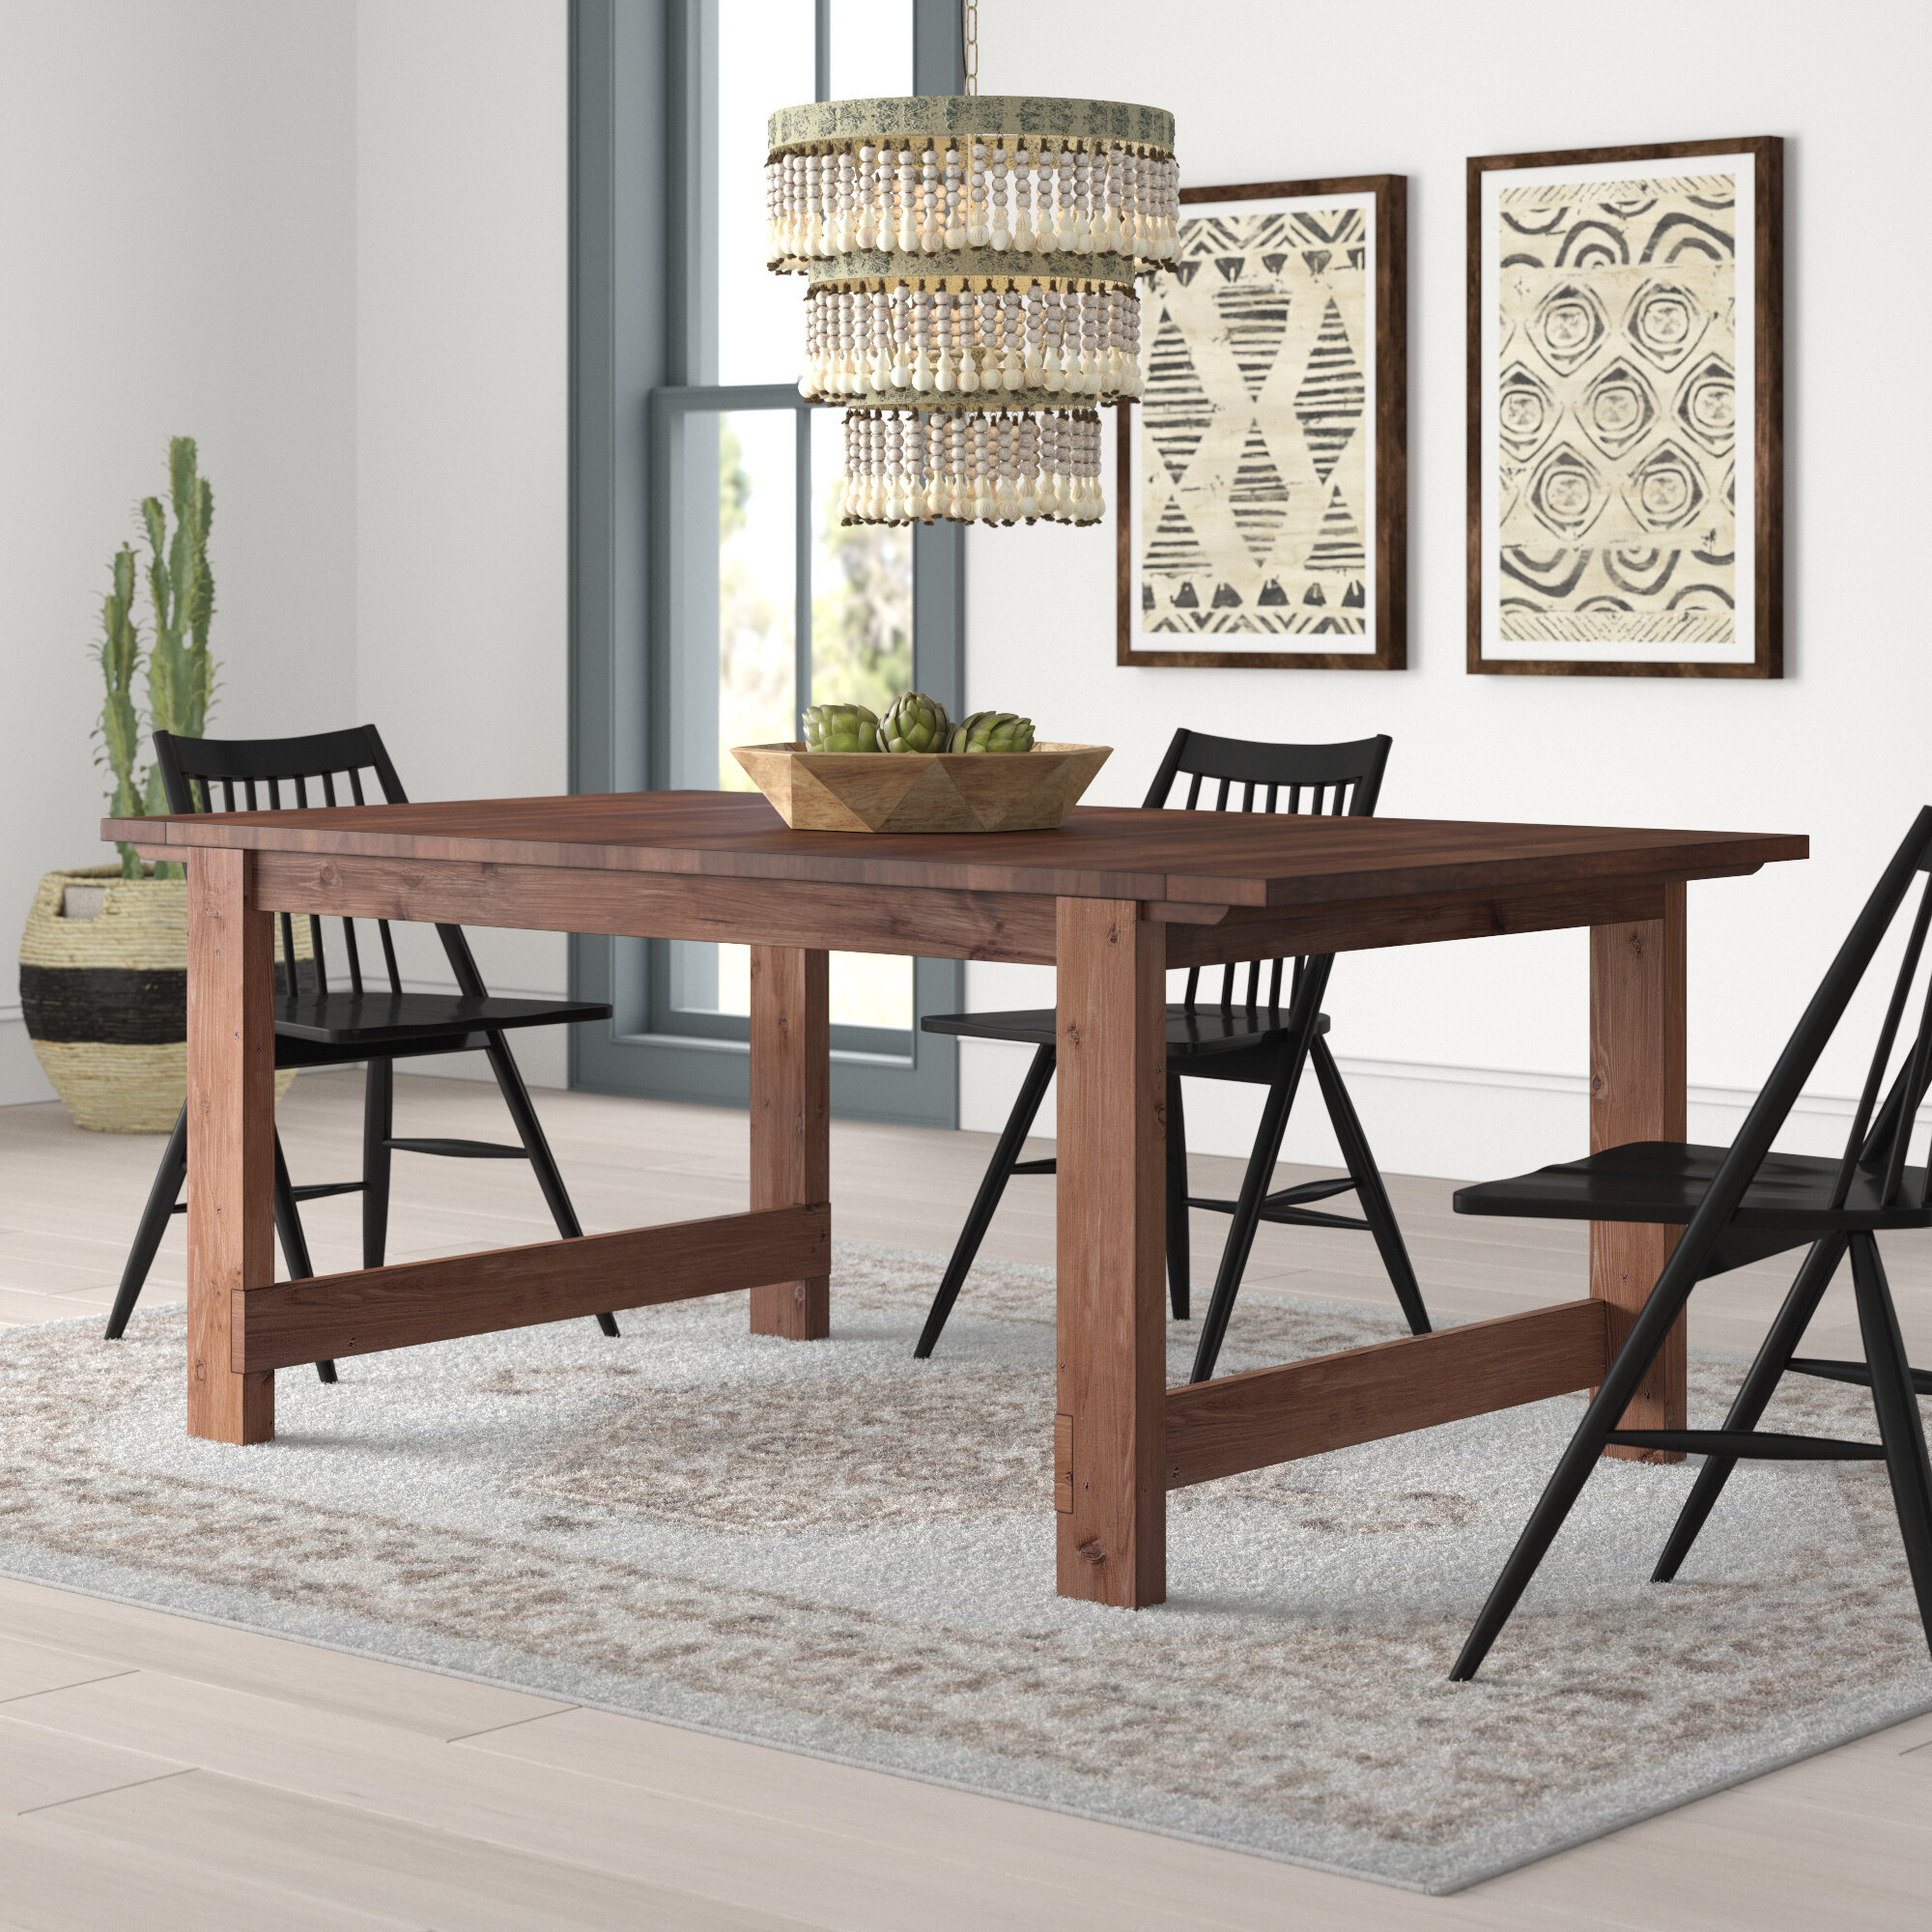 Trevion Trestle Extendable Dining Table With 2017 Rustic Mahogany Extending Dining Tables (View 17 of 25)